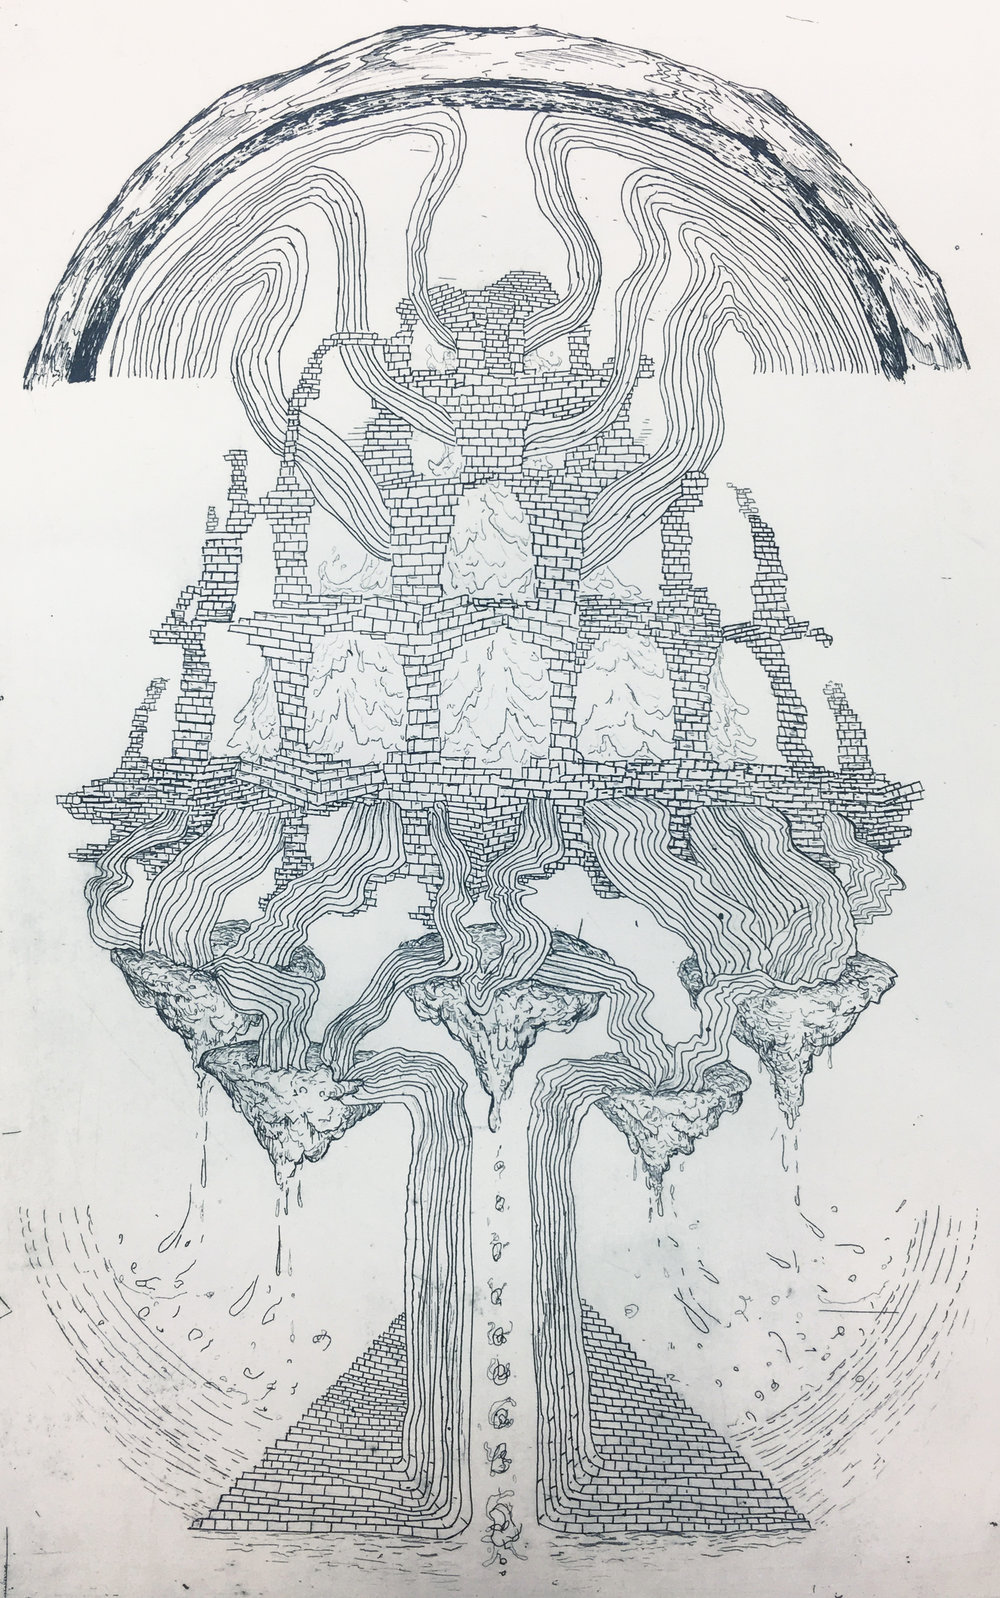 John O'Donnell   Hollow Earth: Morphology , 2017 etching